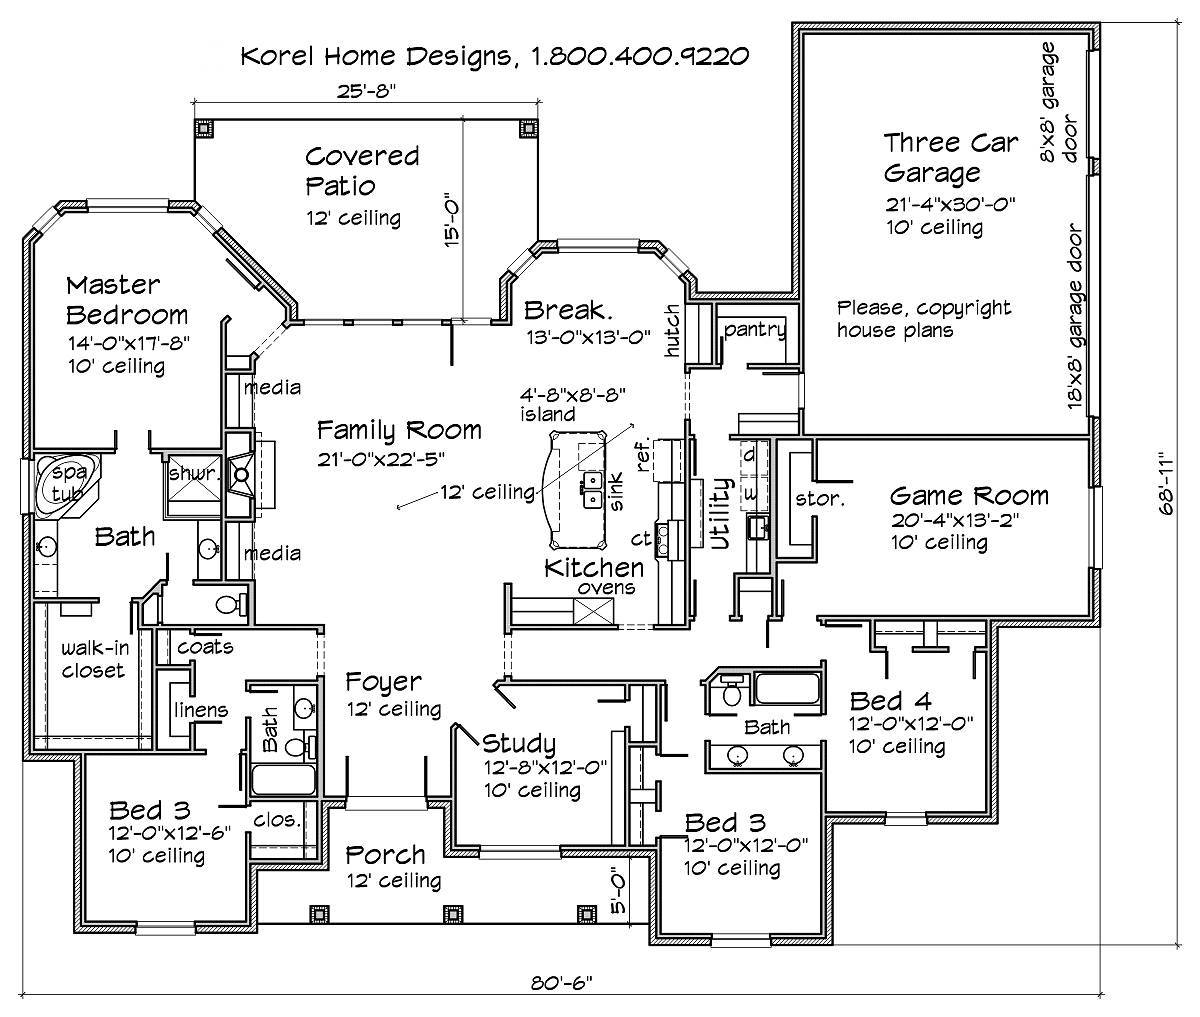 Texas House Plans - Over 700 Proven Home Designs